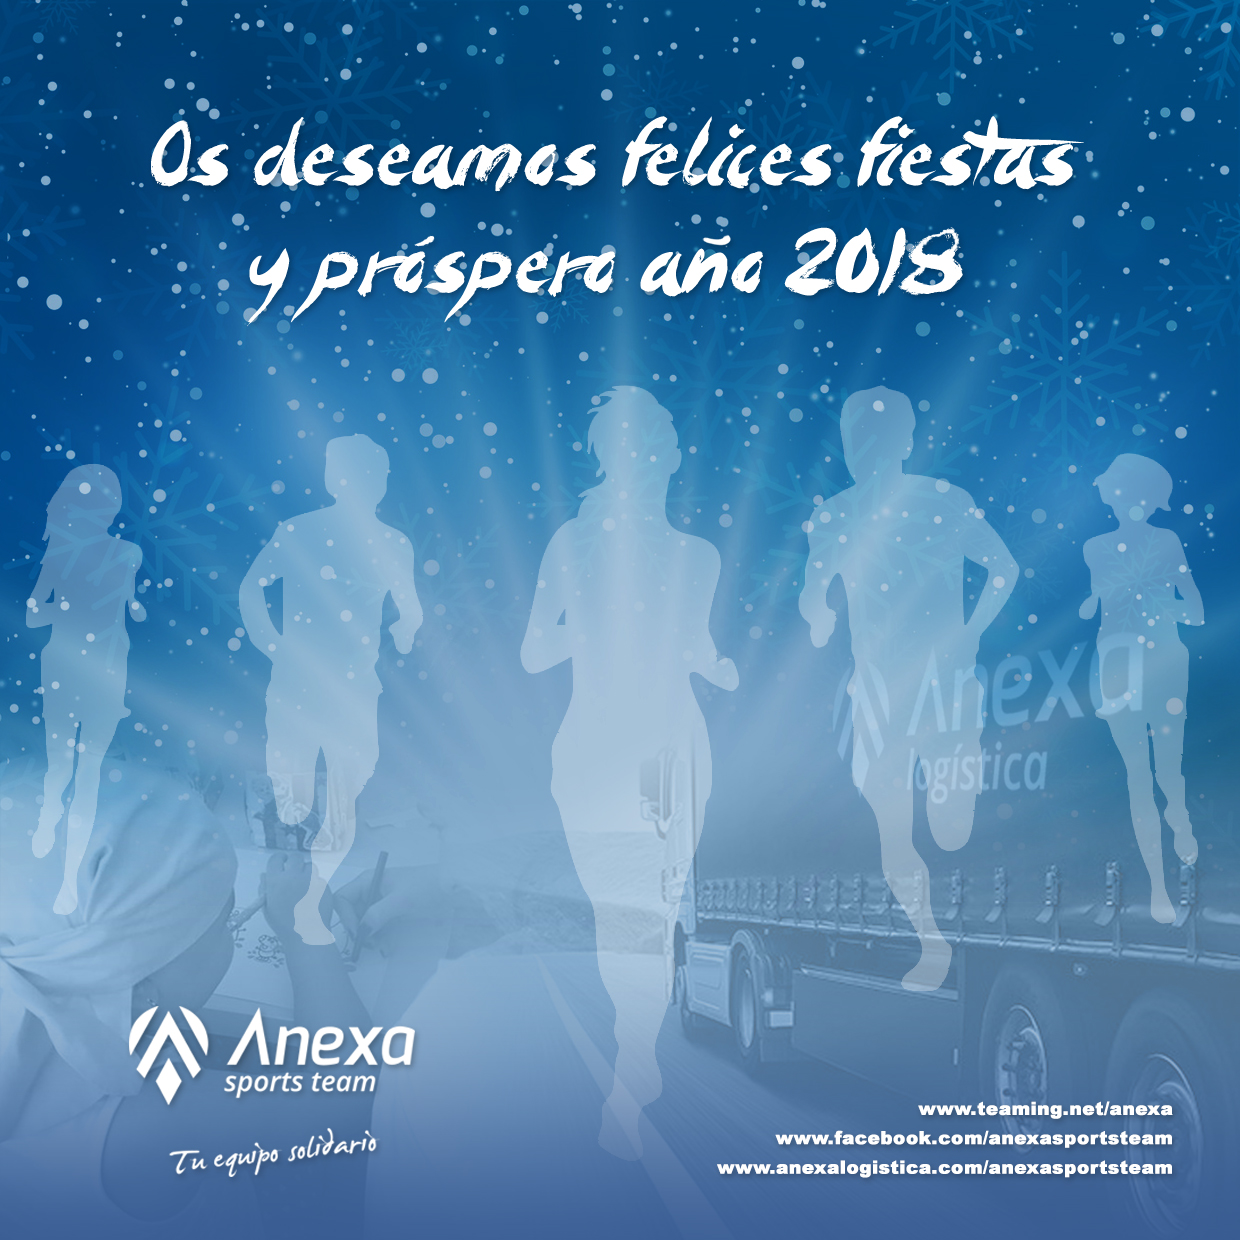 ANEXA SPORTS TEAM-Felicitación 2018-v1